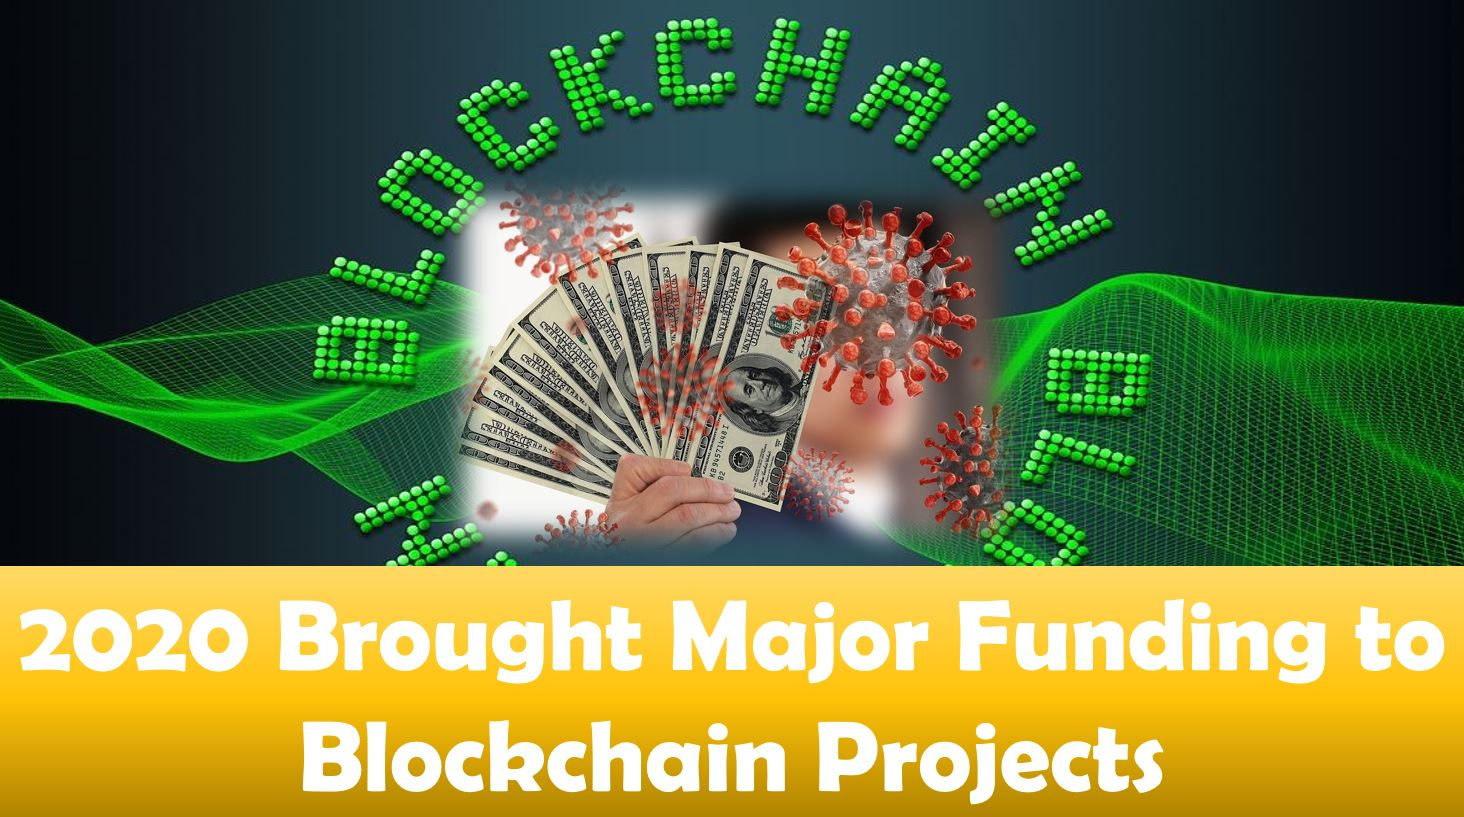 2020 Brought Major Funding to Blockchain Projects